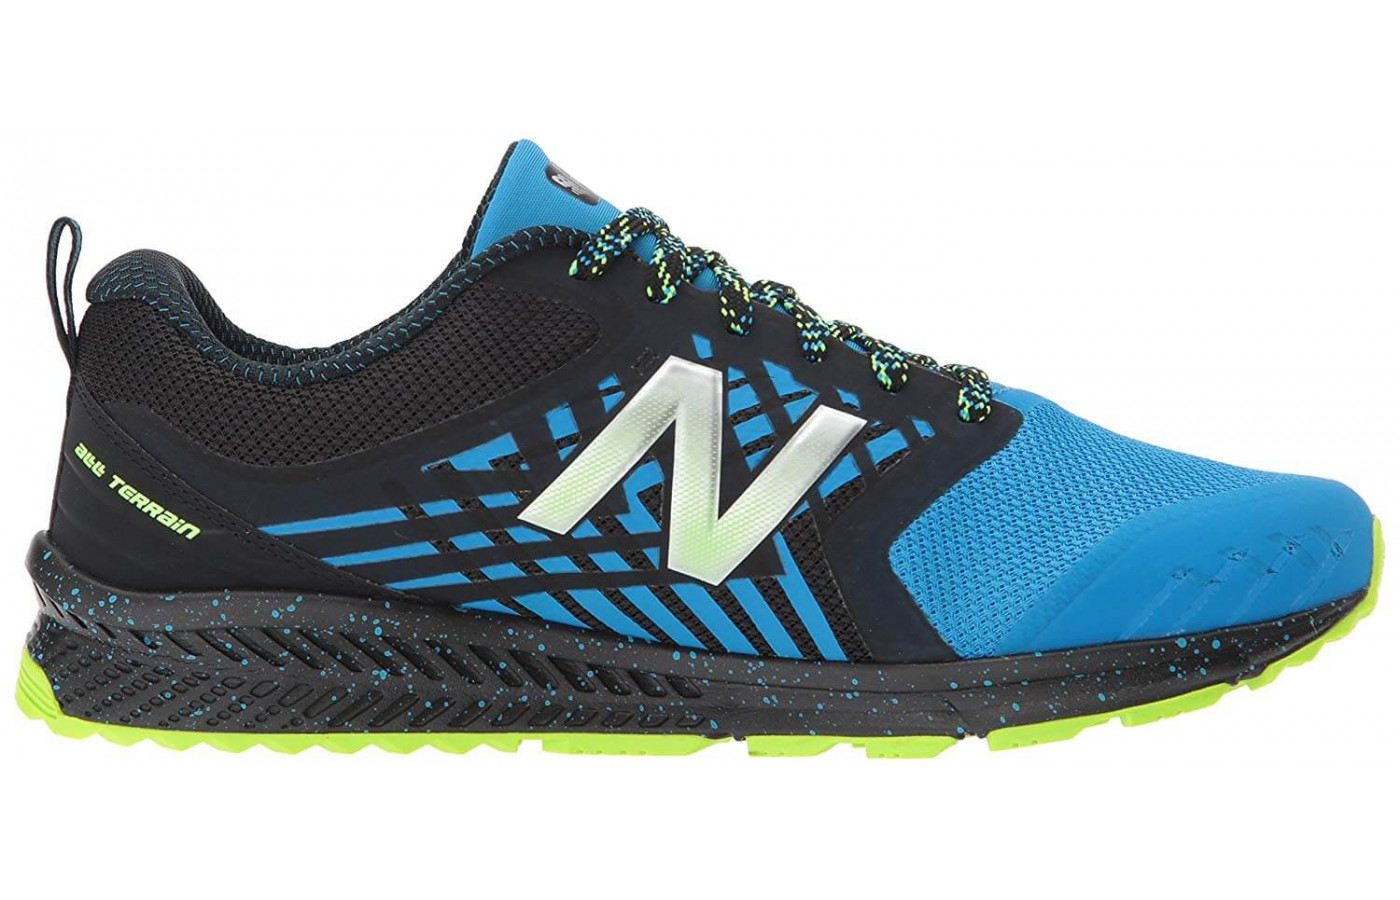 New Balance Fuelcore Nitrel Lateral